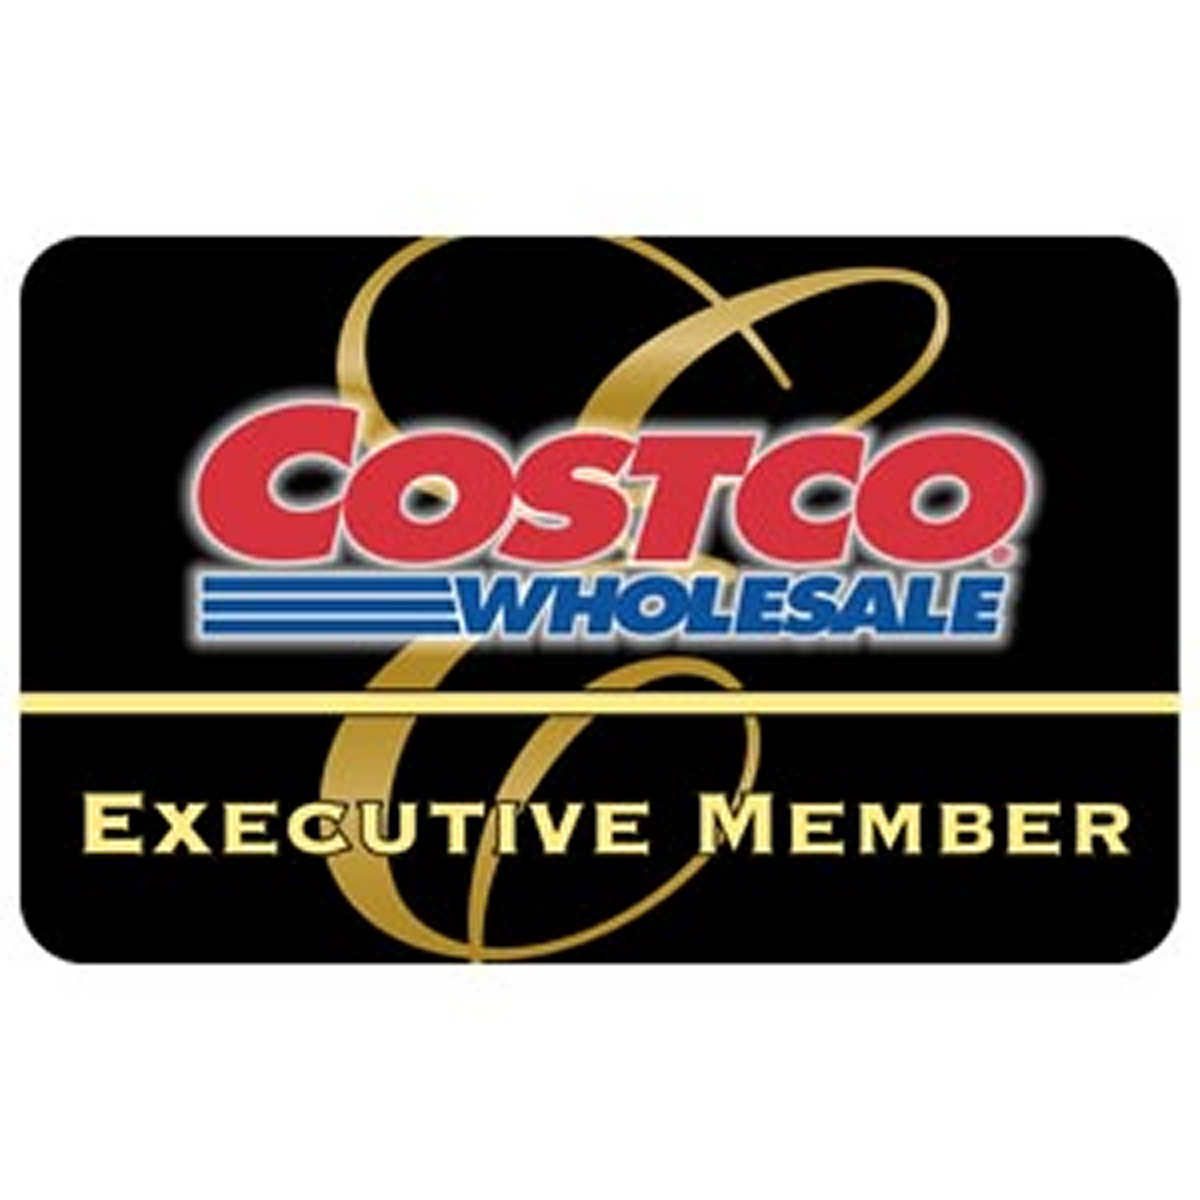 Costco business cards business card design inspiration for Costco business cards printing